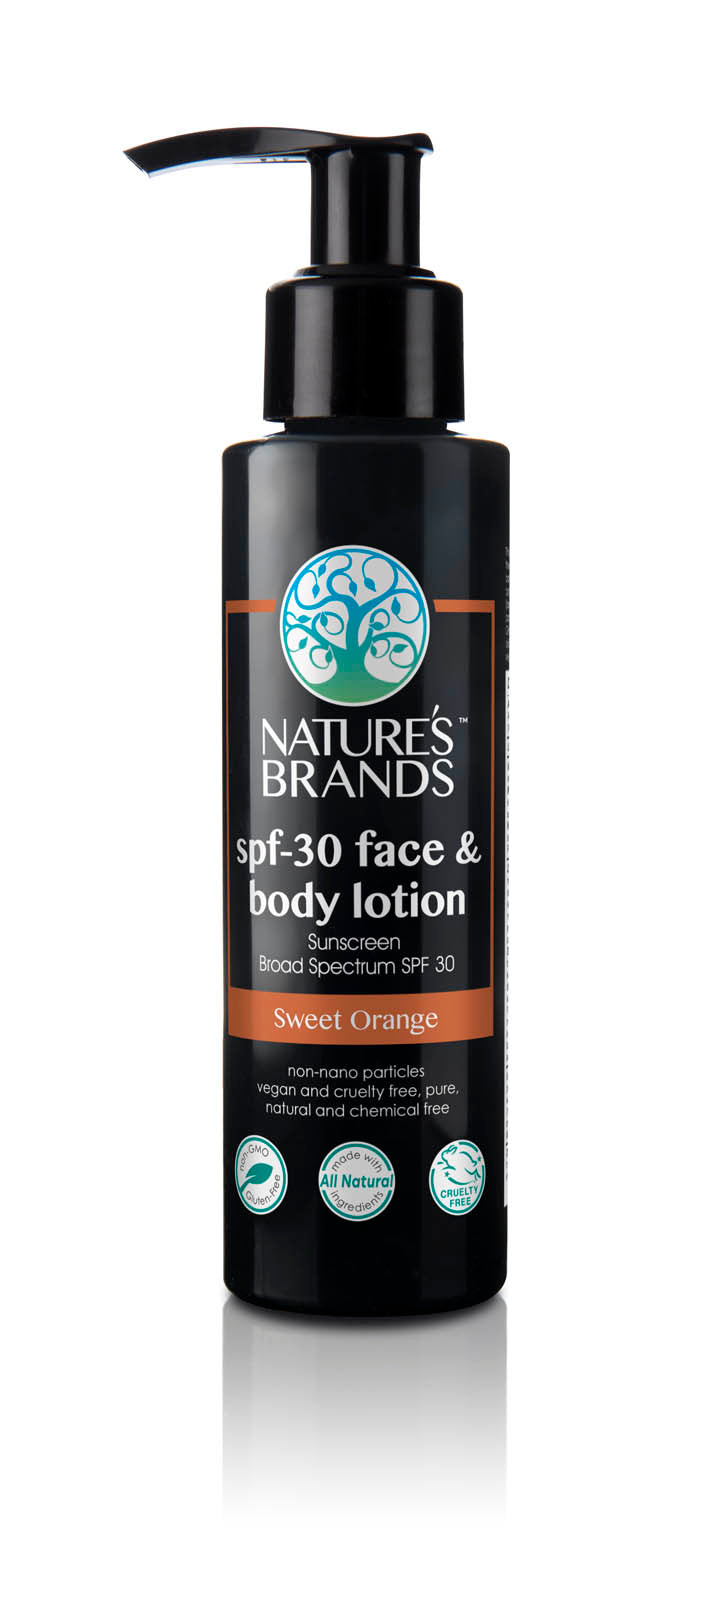 Herbal Choice Mari Natural SPF 30 Face And Body Lotion - Herbal Choice Mari Natural SPF 30 Face And Body Lotion - Herbal Choice Mari Natural SPF 30 Face And Body Lotion